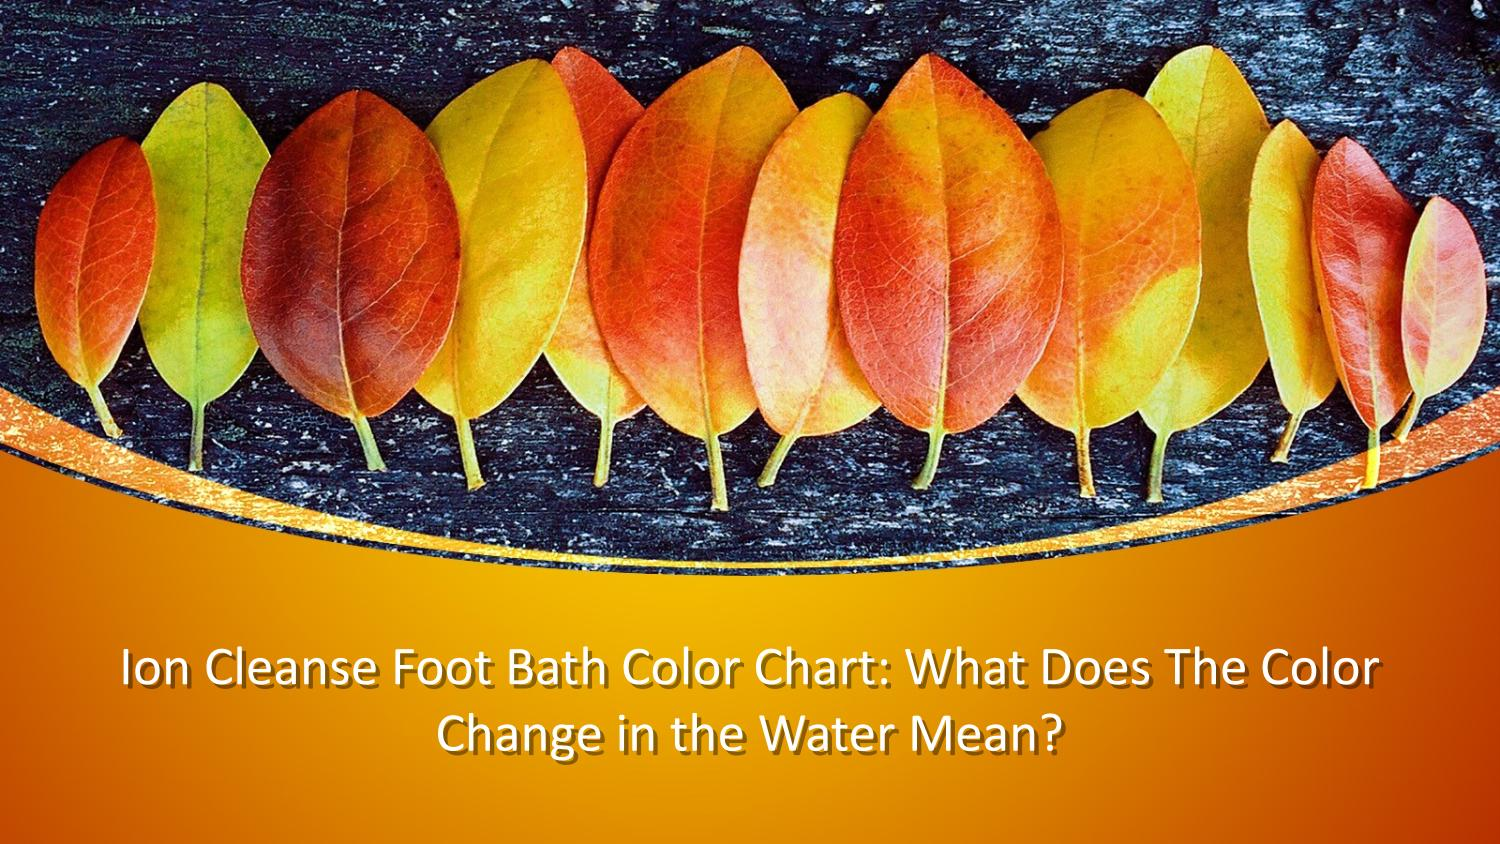 Ion Cleanse Foot Bath Color Chart What Does The Color Change In The Water Mean By Healthier Living 4 You Issuu